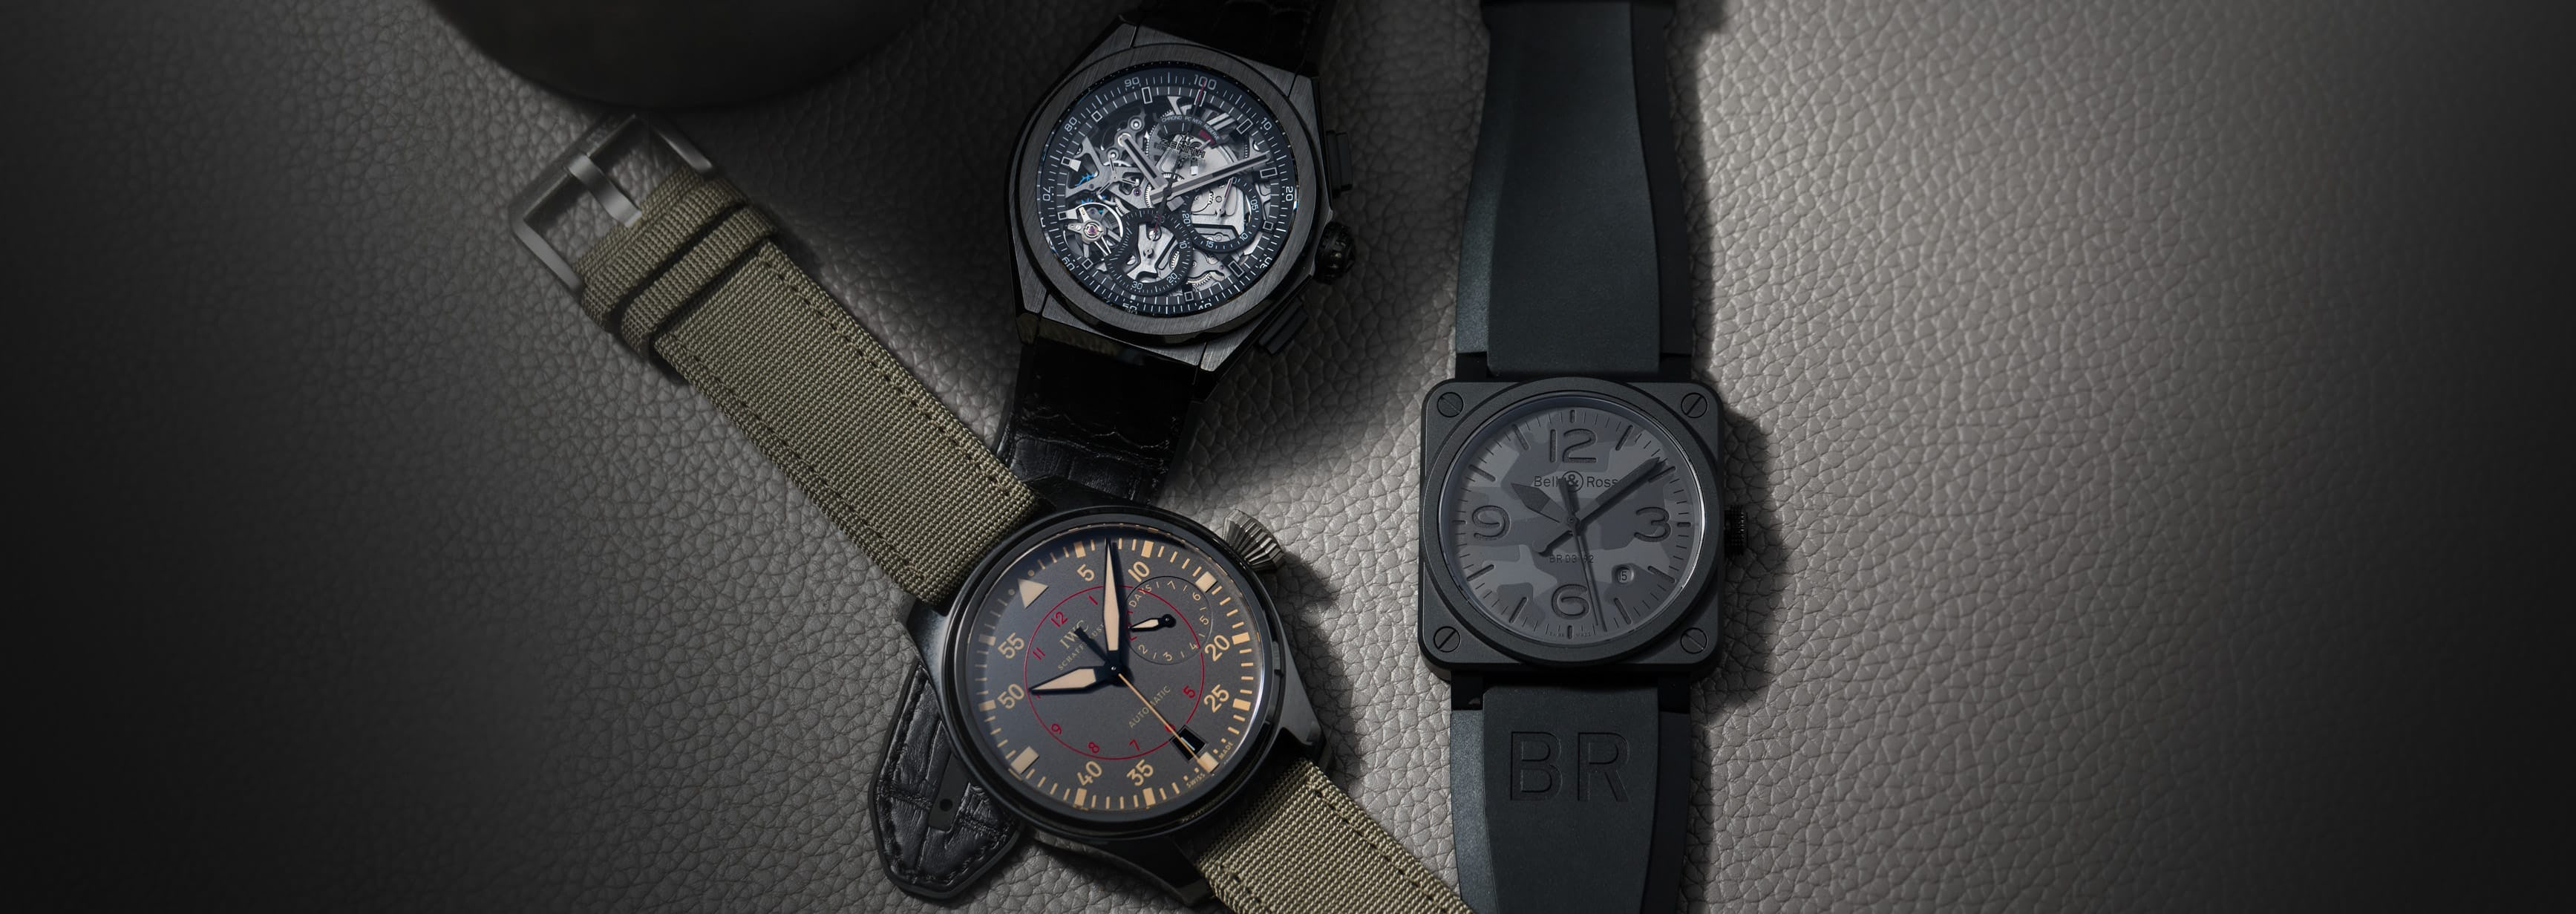 Ceramic Watches: Not as New of a Trend as You Might Think